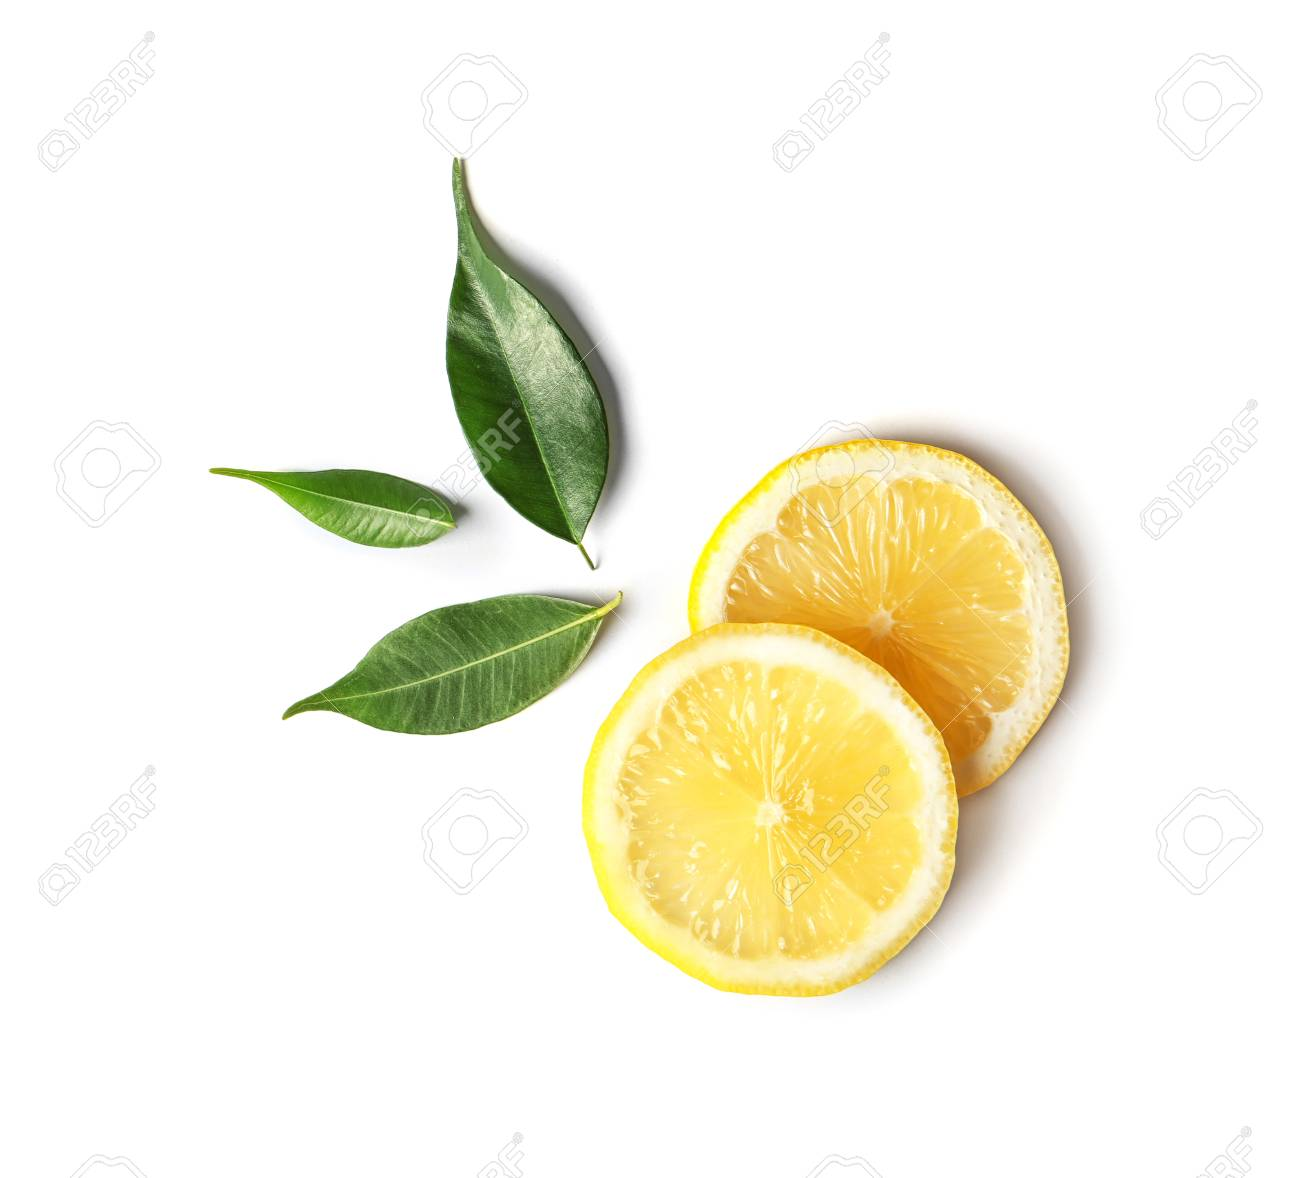 Flat lay composition with lemon slices and leaves on white background - 106323342